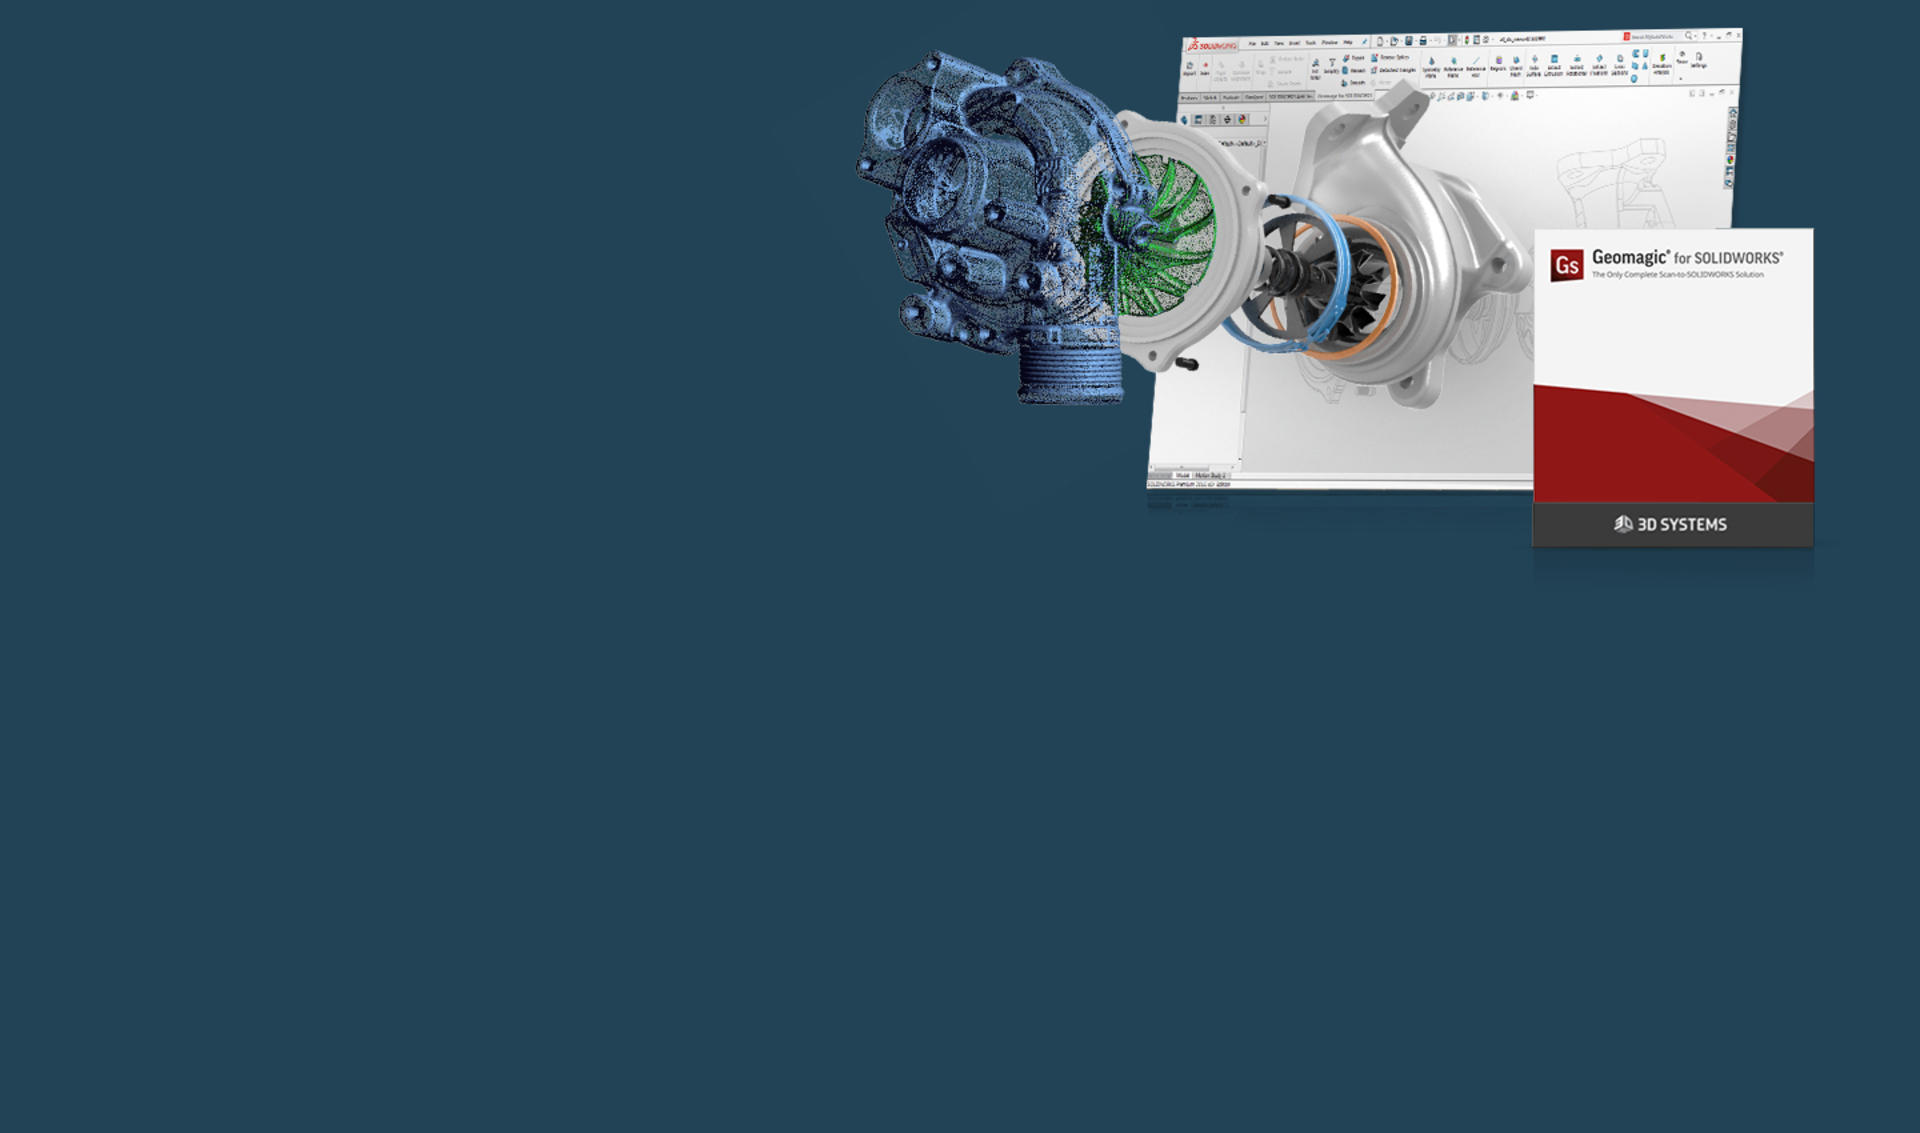 Geomagic for SOLIDWORKS version release homepage banner